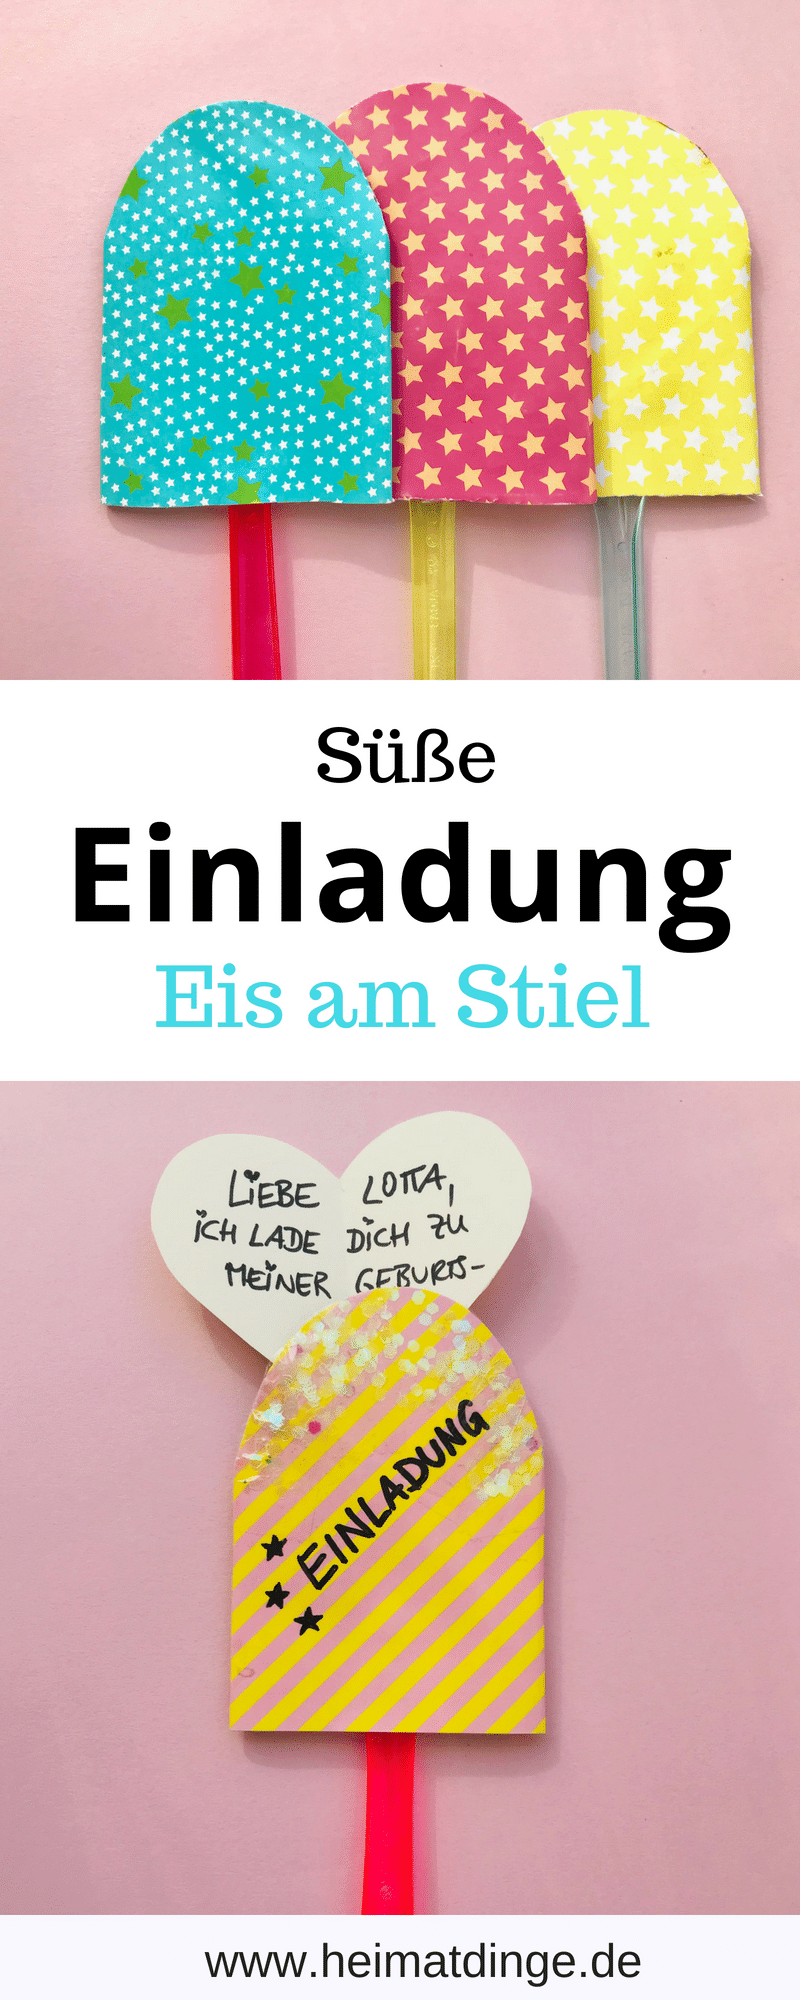 diy einladungskarte eis am stil aus klorolle in 5 min selber machen. Black Bedroom Furniture Sets. Home Design Ideas